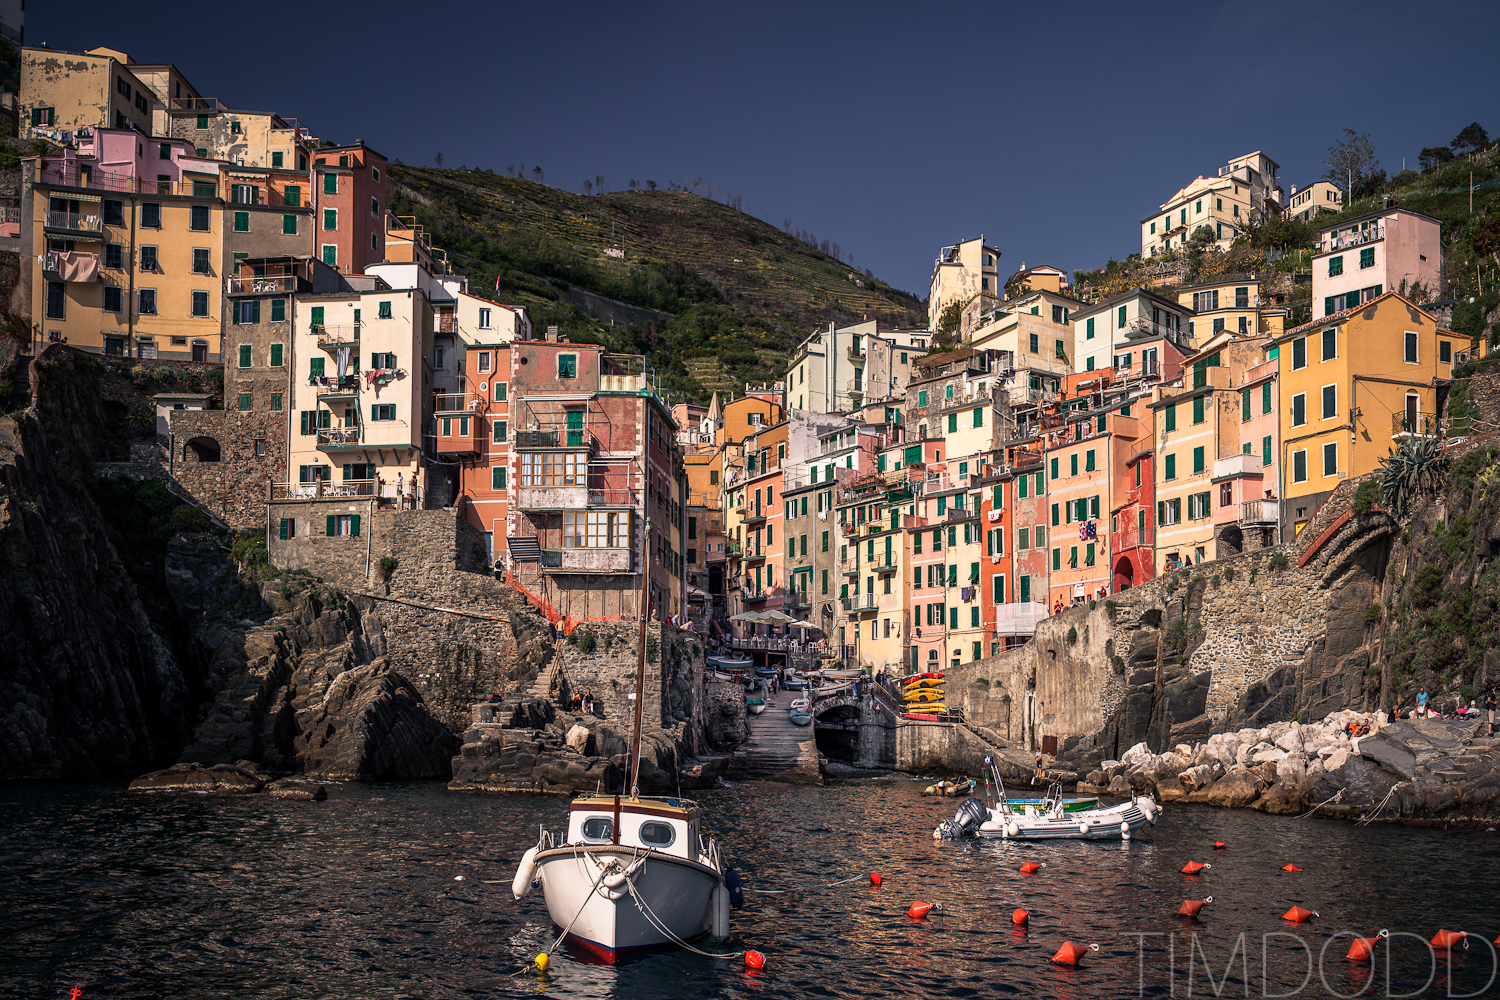 Riomaggiore, Cinque Terre, Italy, Tim Dodd Photography, Cedar Falls, Iowa 2 Travel to Europe for cheap, top 10 things to see in Europe, must see, photographers guide, photographs, best pictures,